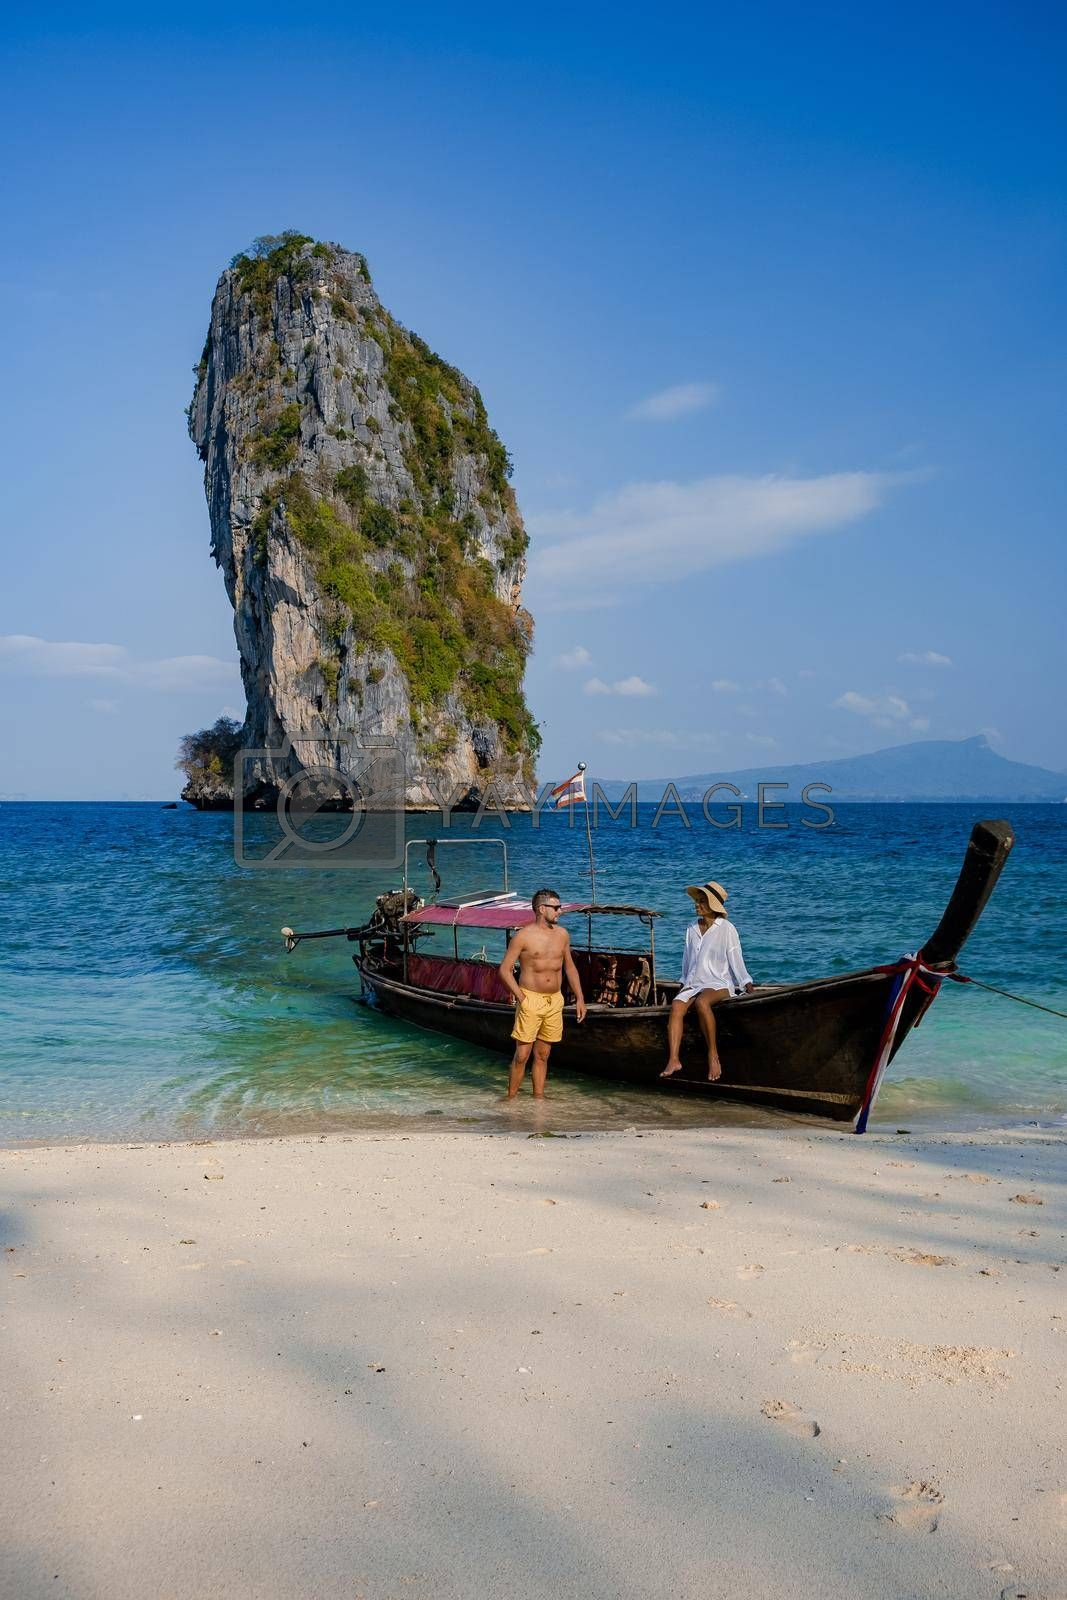 Royalty free image of Koh Poda Island Thailand, couple mid age Asian woman and European man on the beach, Koh Poda Thailand, The beautiful tropical beach of Koh Poda or Poda Island in Krabi province of Thailand.  by fokkebok